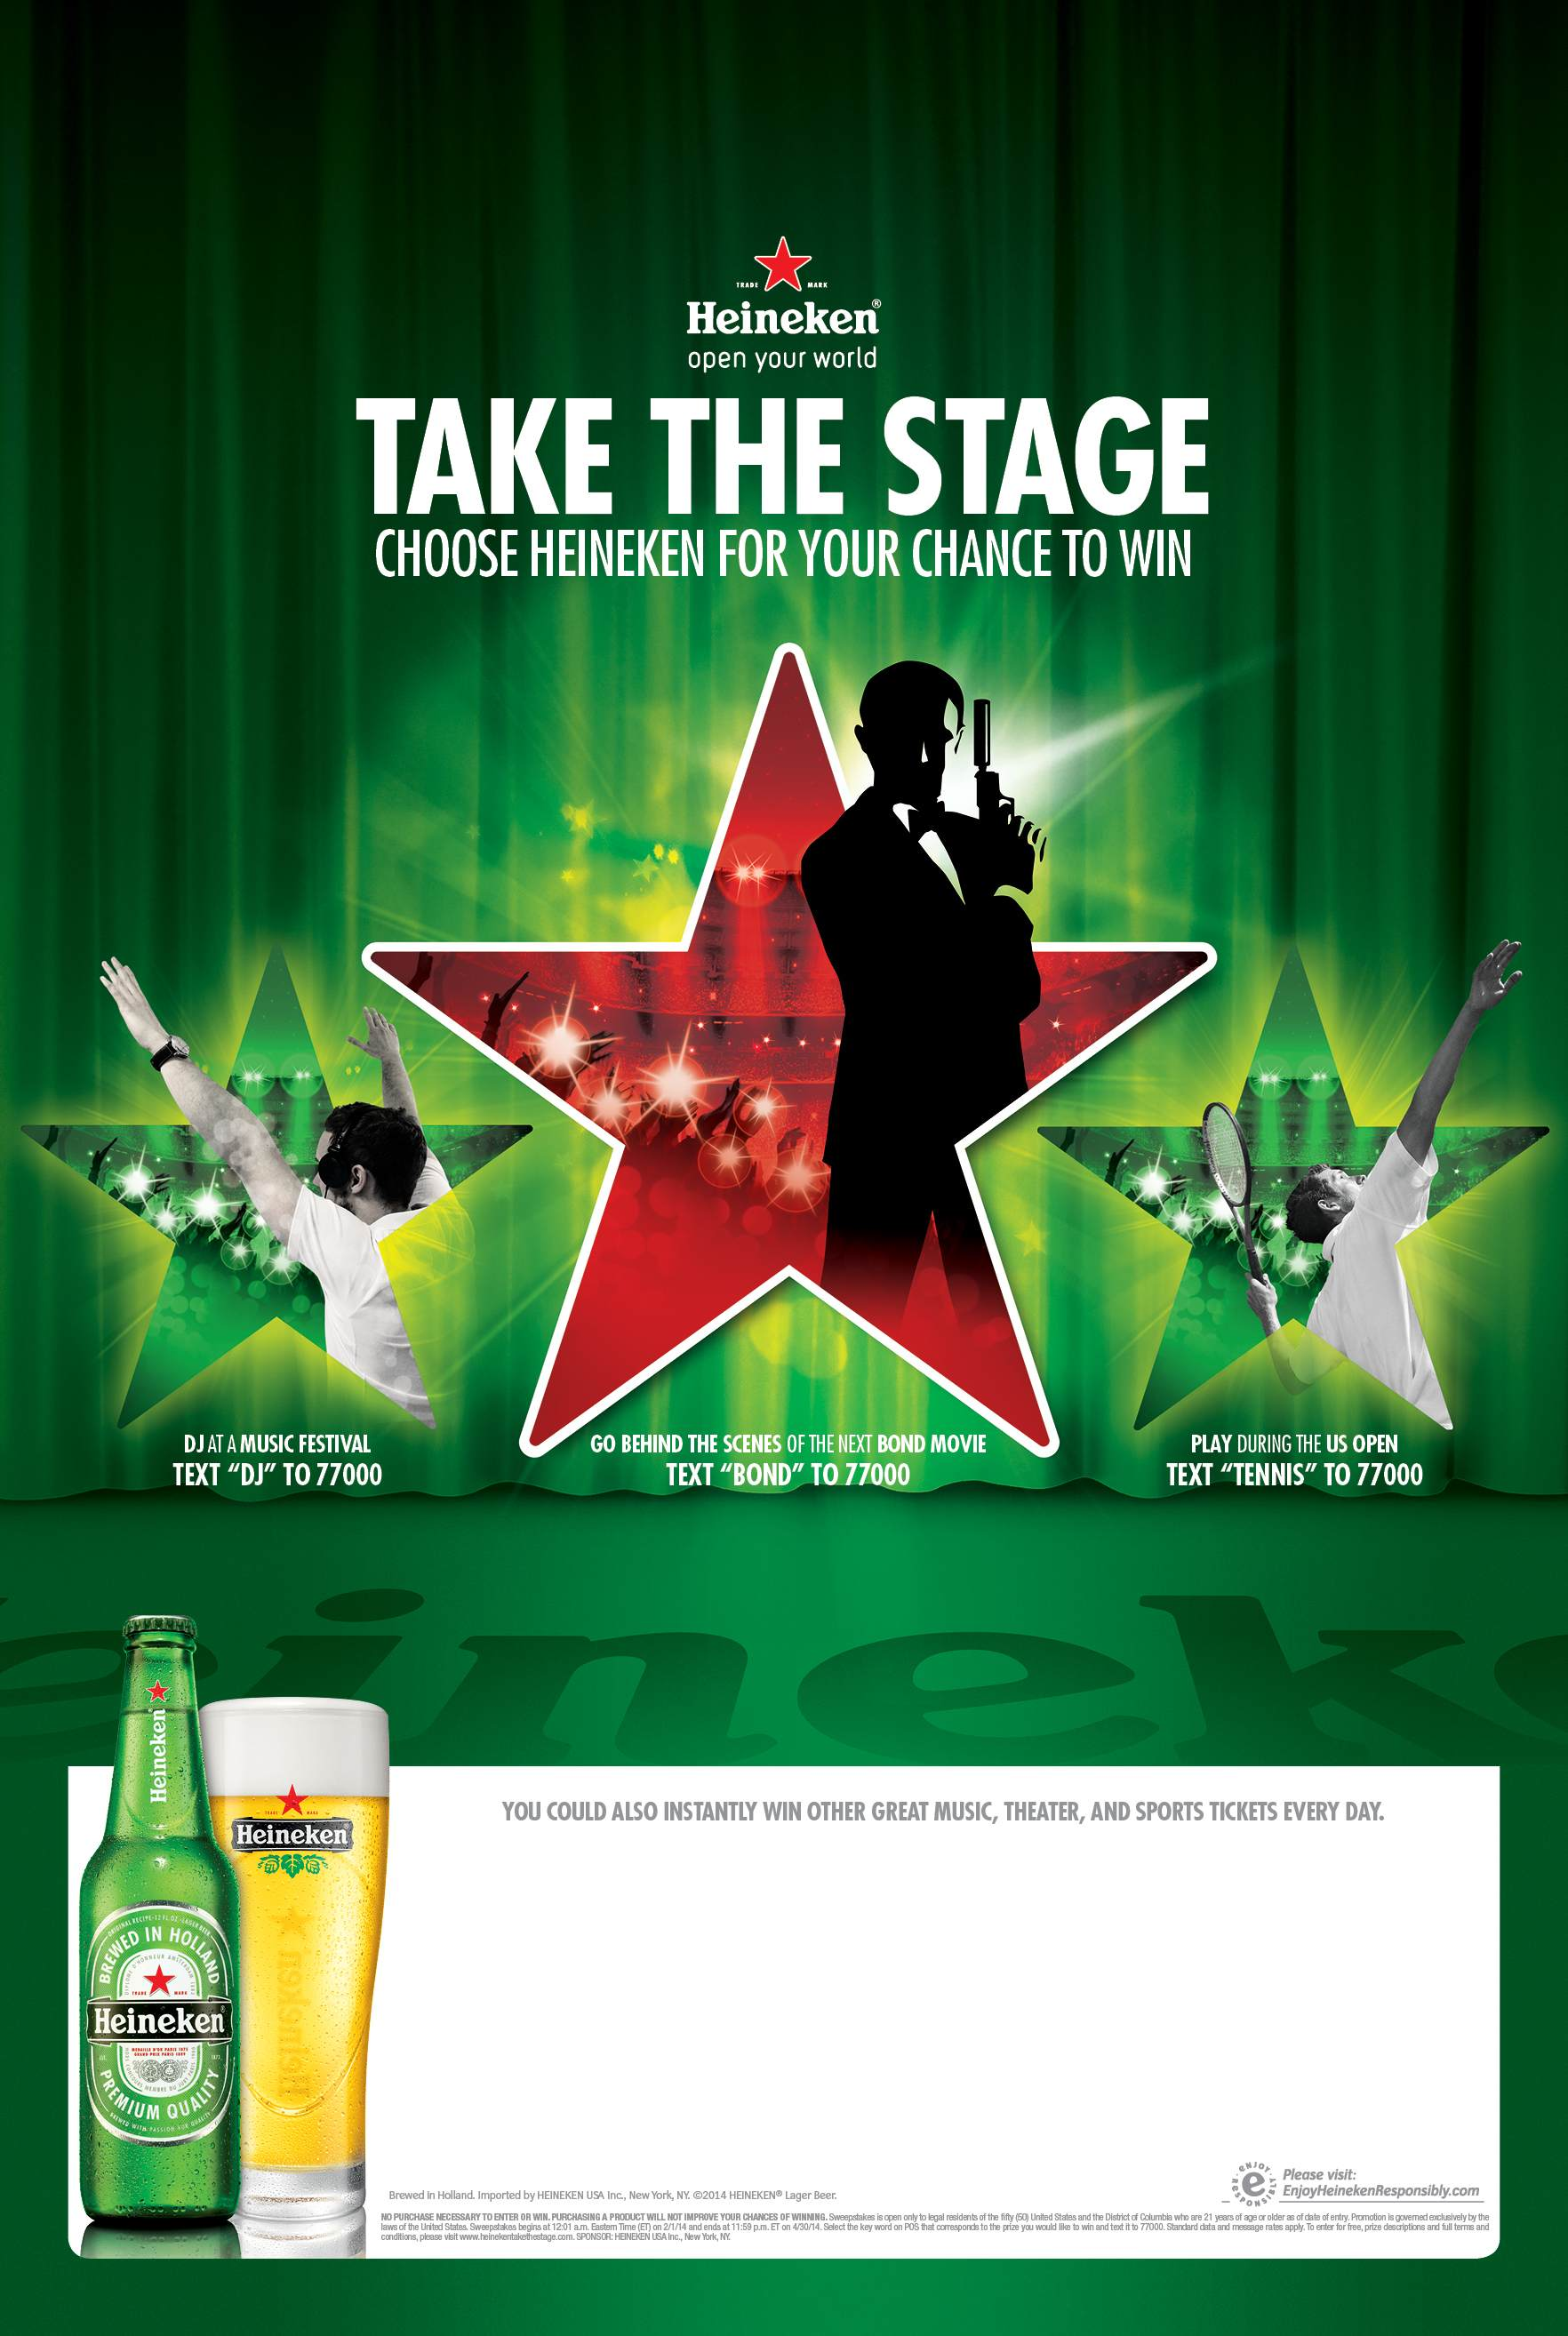 Mail In Rebate Offers >> Heineken's Takes the Stage Campaign Kicks Off | The ...